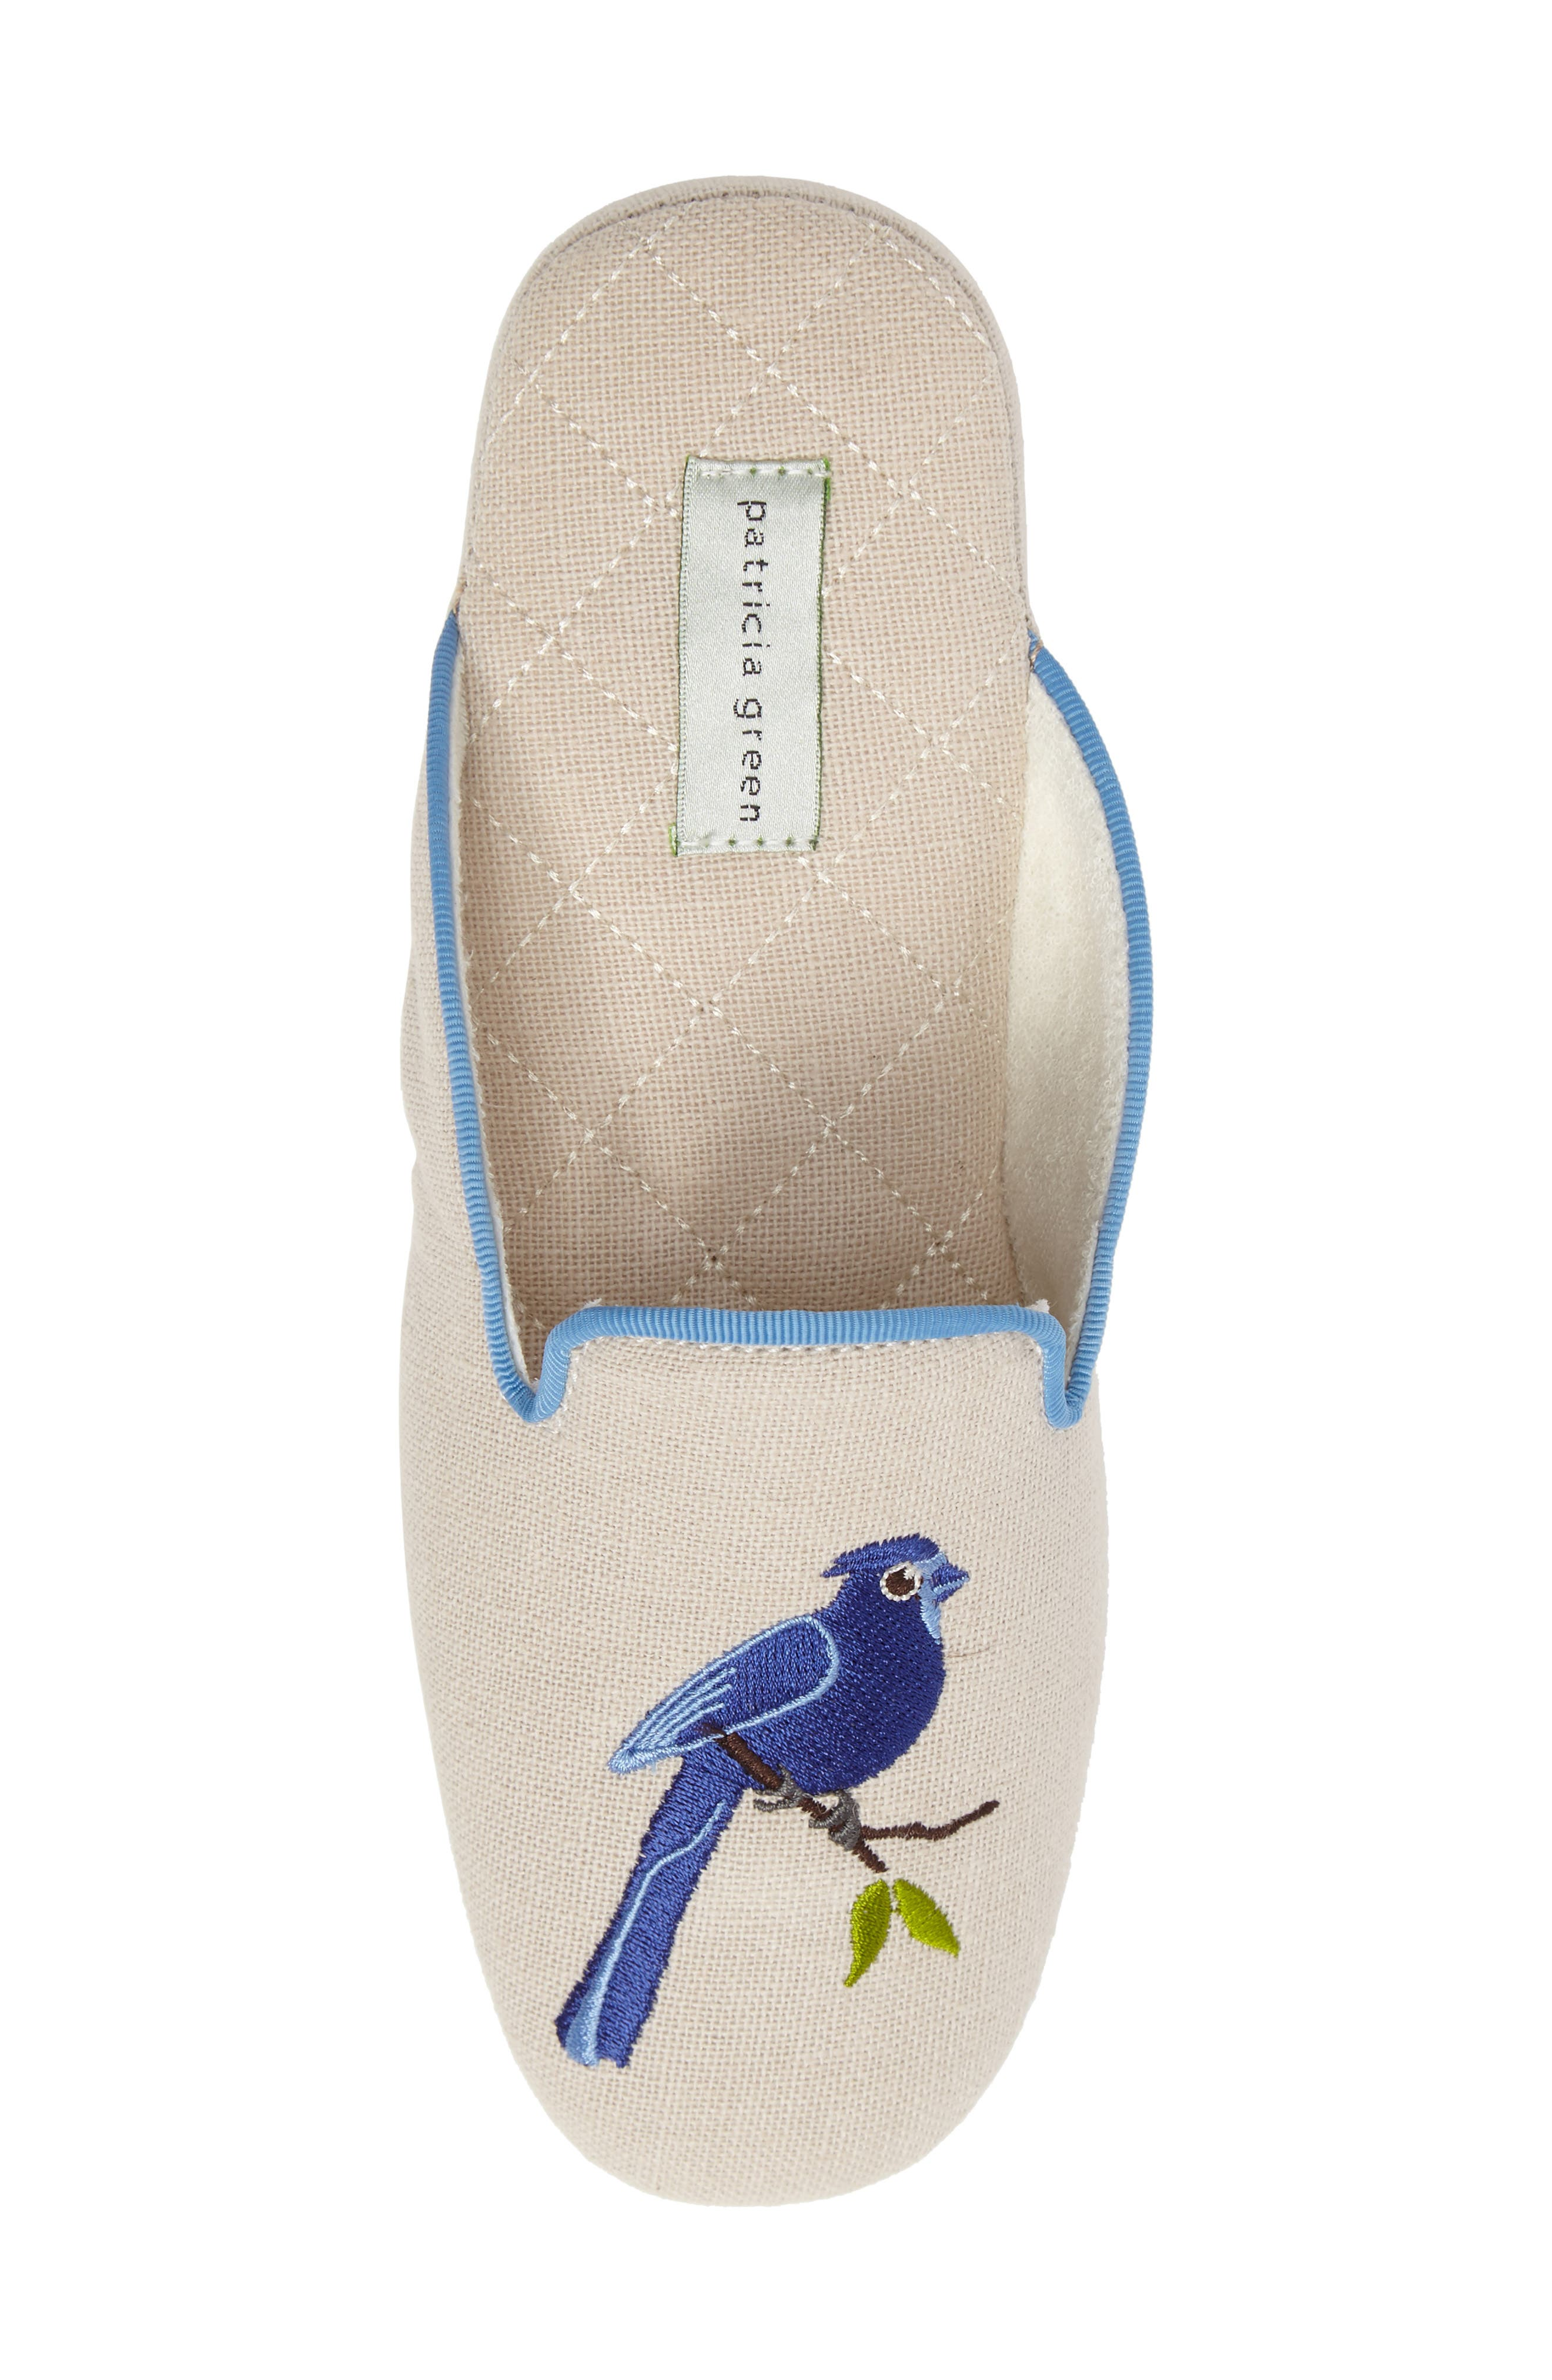 Bluebird Embroidered Slipper,                             Alternate thumbnail 5, color,                             255